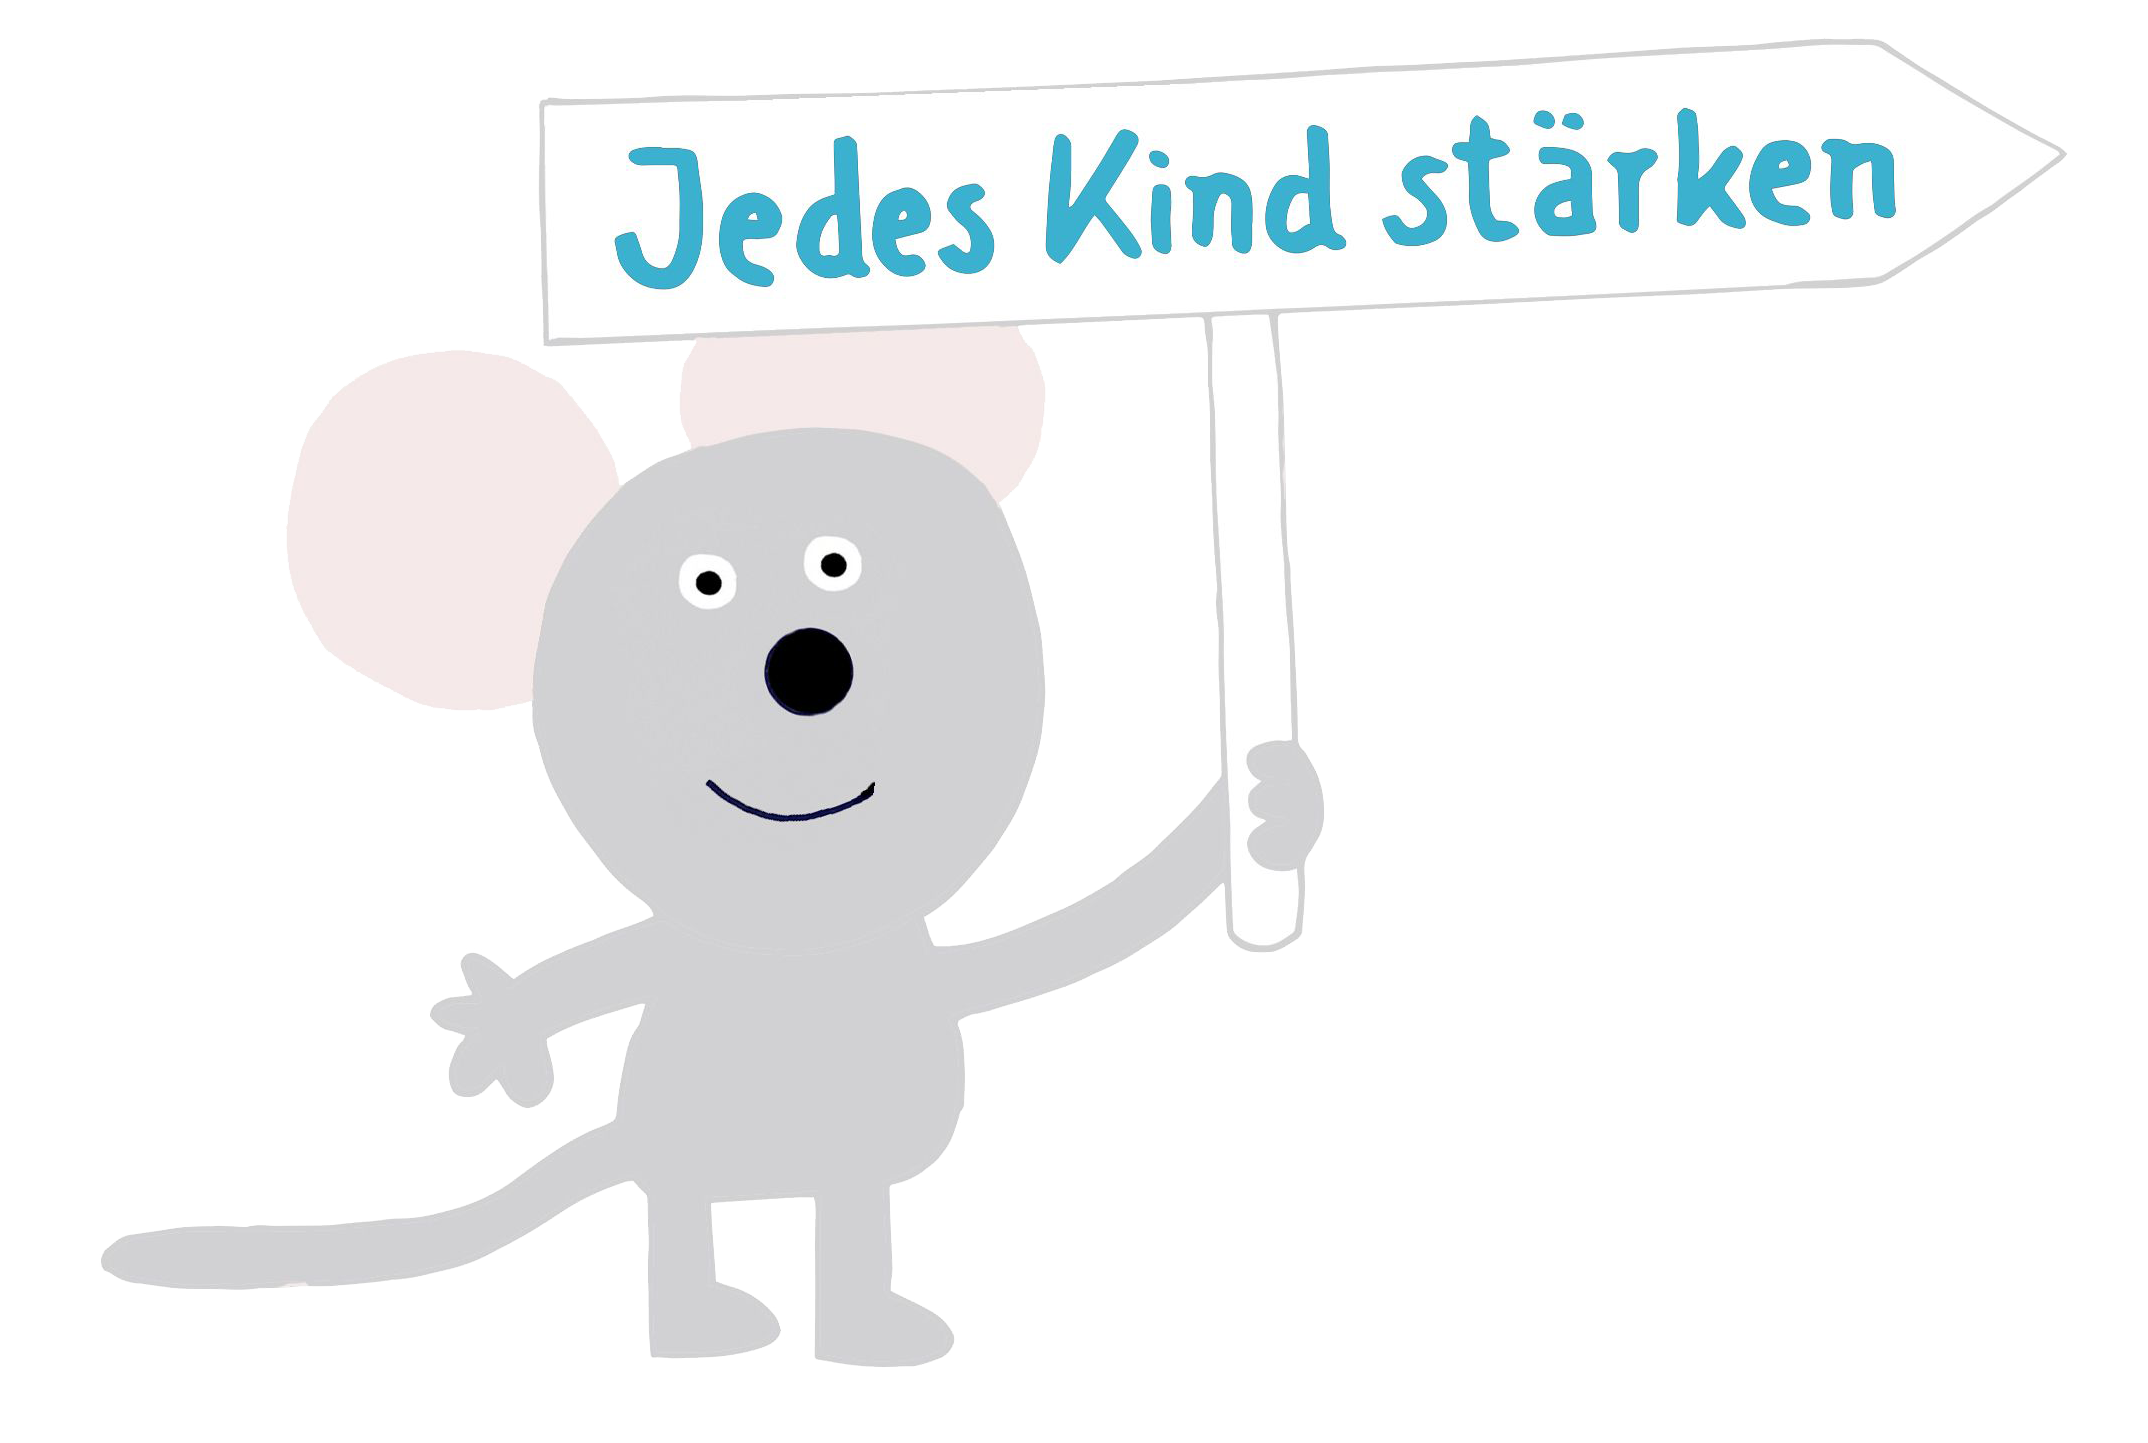 lewi_jedes kind.png